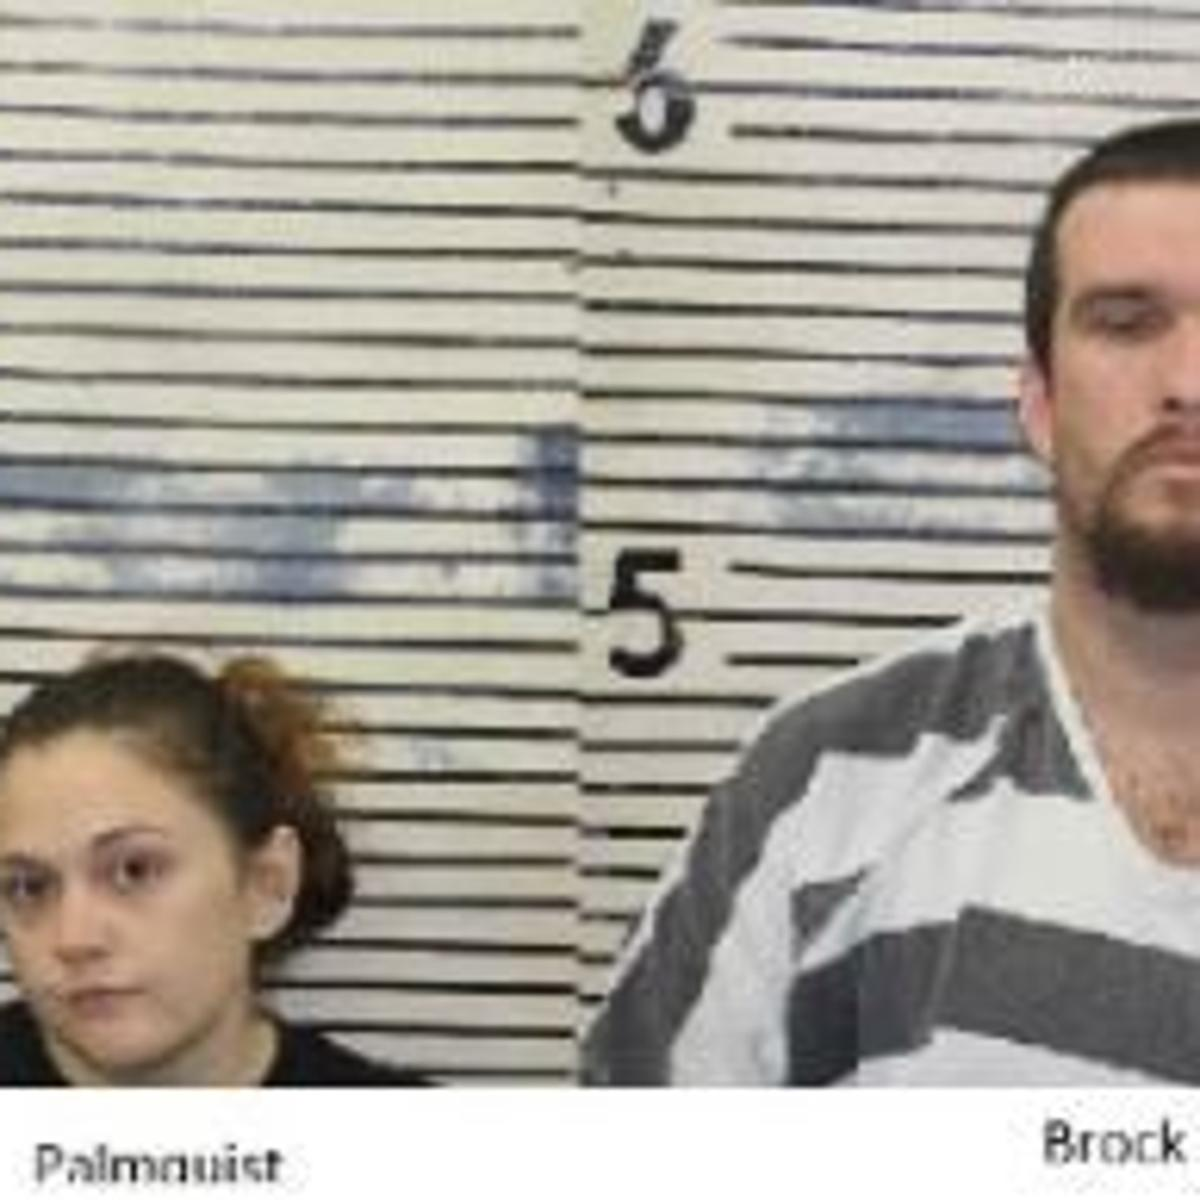 Arrest warrants issued for two wanted in Holmes County burglary